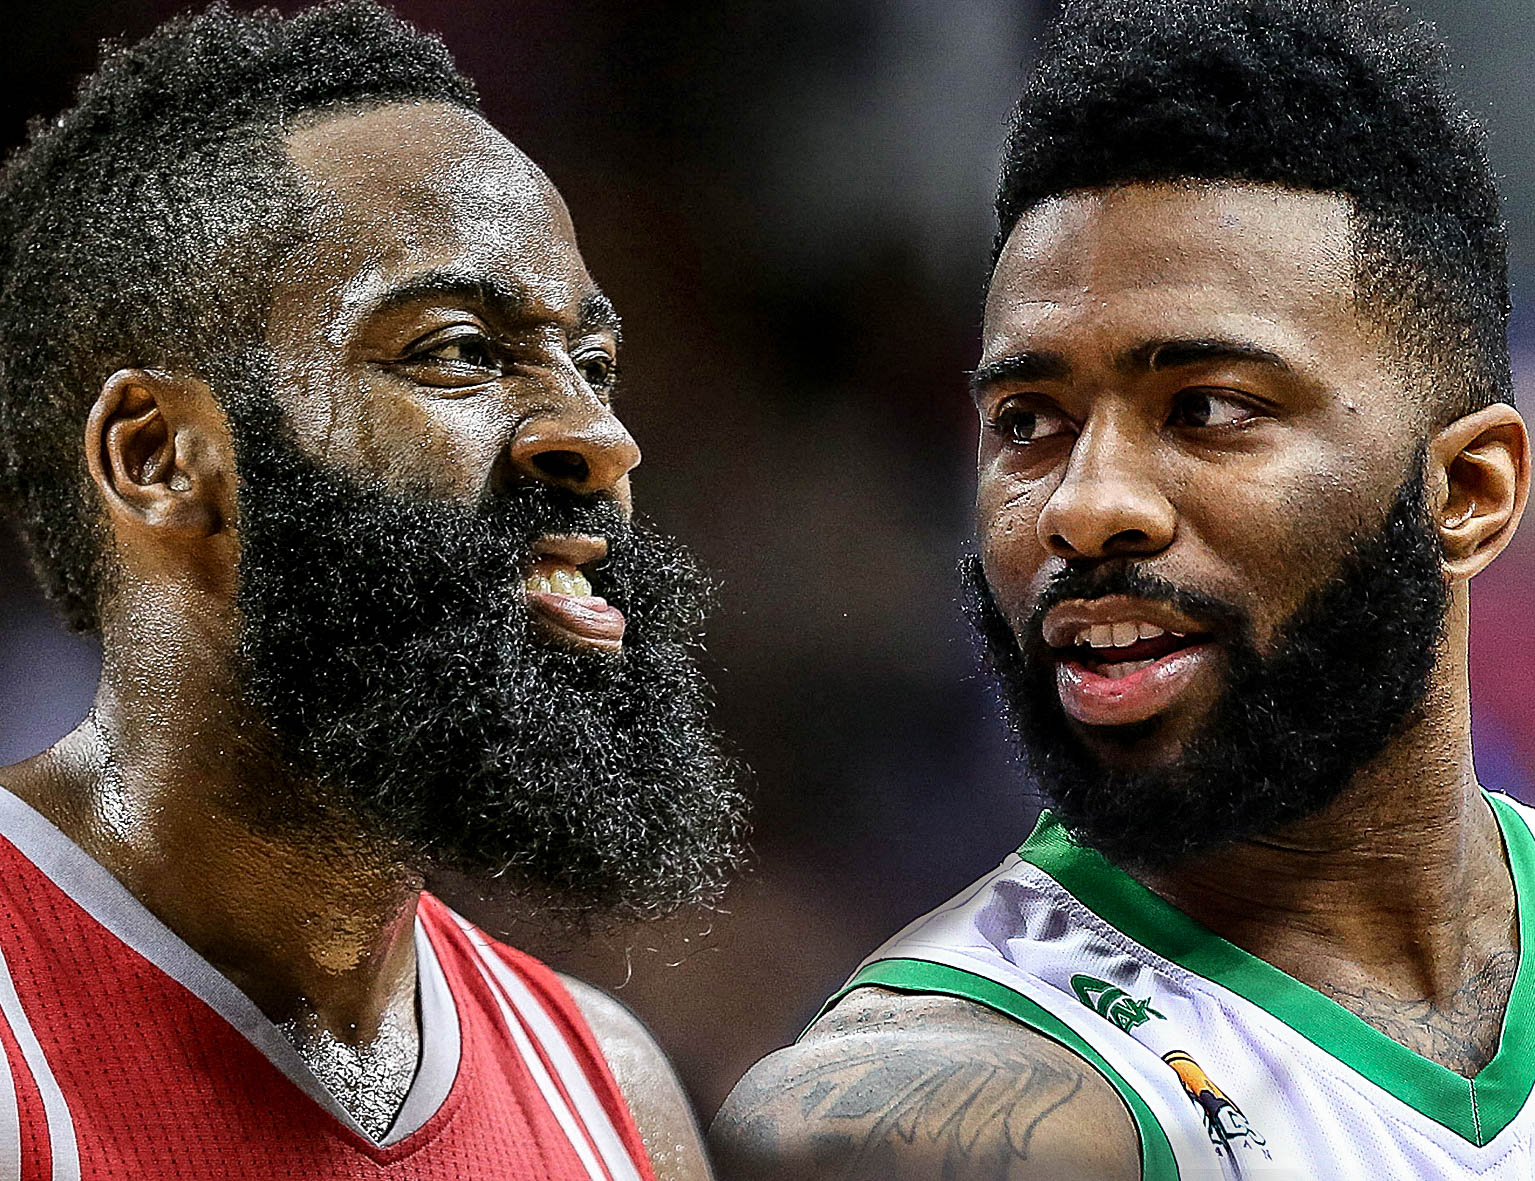 james harden haircut - Haircuts Models Ideas